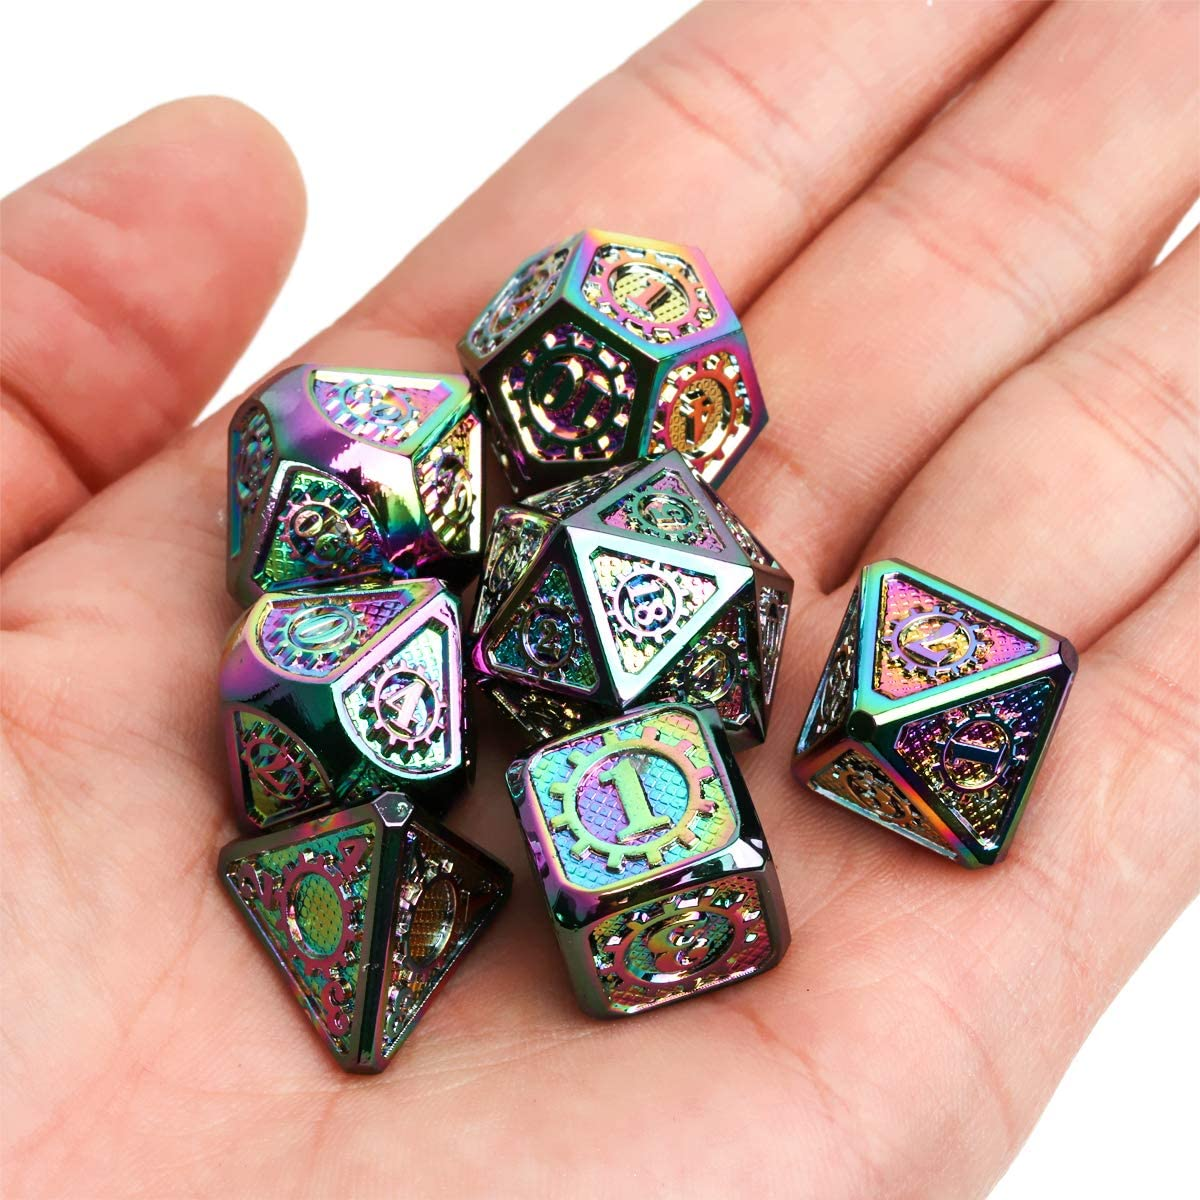 Shadowrun Acient Silver Metal DND Dice Set Pathfinder 11PCS D/&D Metal Dice with Metal Case for Dungeons and Dragons Savage World and Table Games